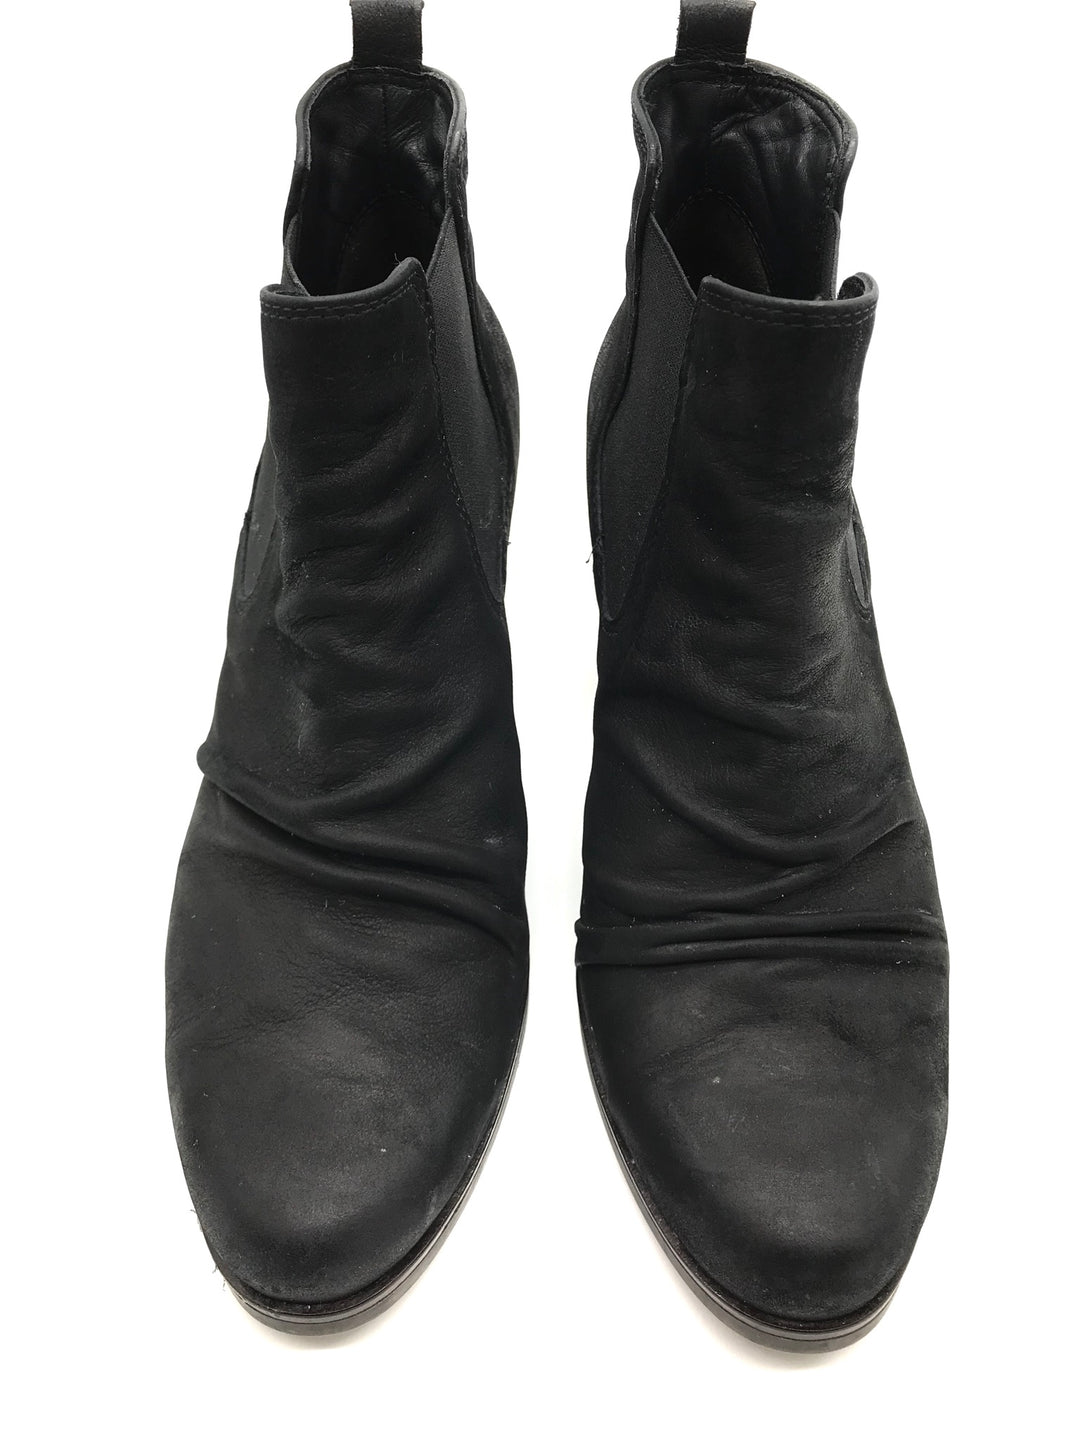 Primary Photo - BRAND: PAUL GREEN<BR>STYLE: BOOTS ANKLE <BR>COLOR: BLACK <BR>SIZE: 8 <BR>SKU: 262-262101-969<BR>AS IS